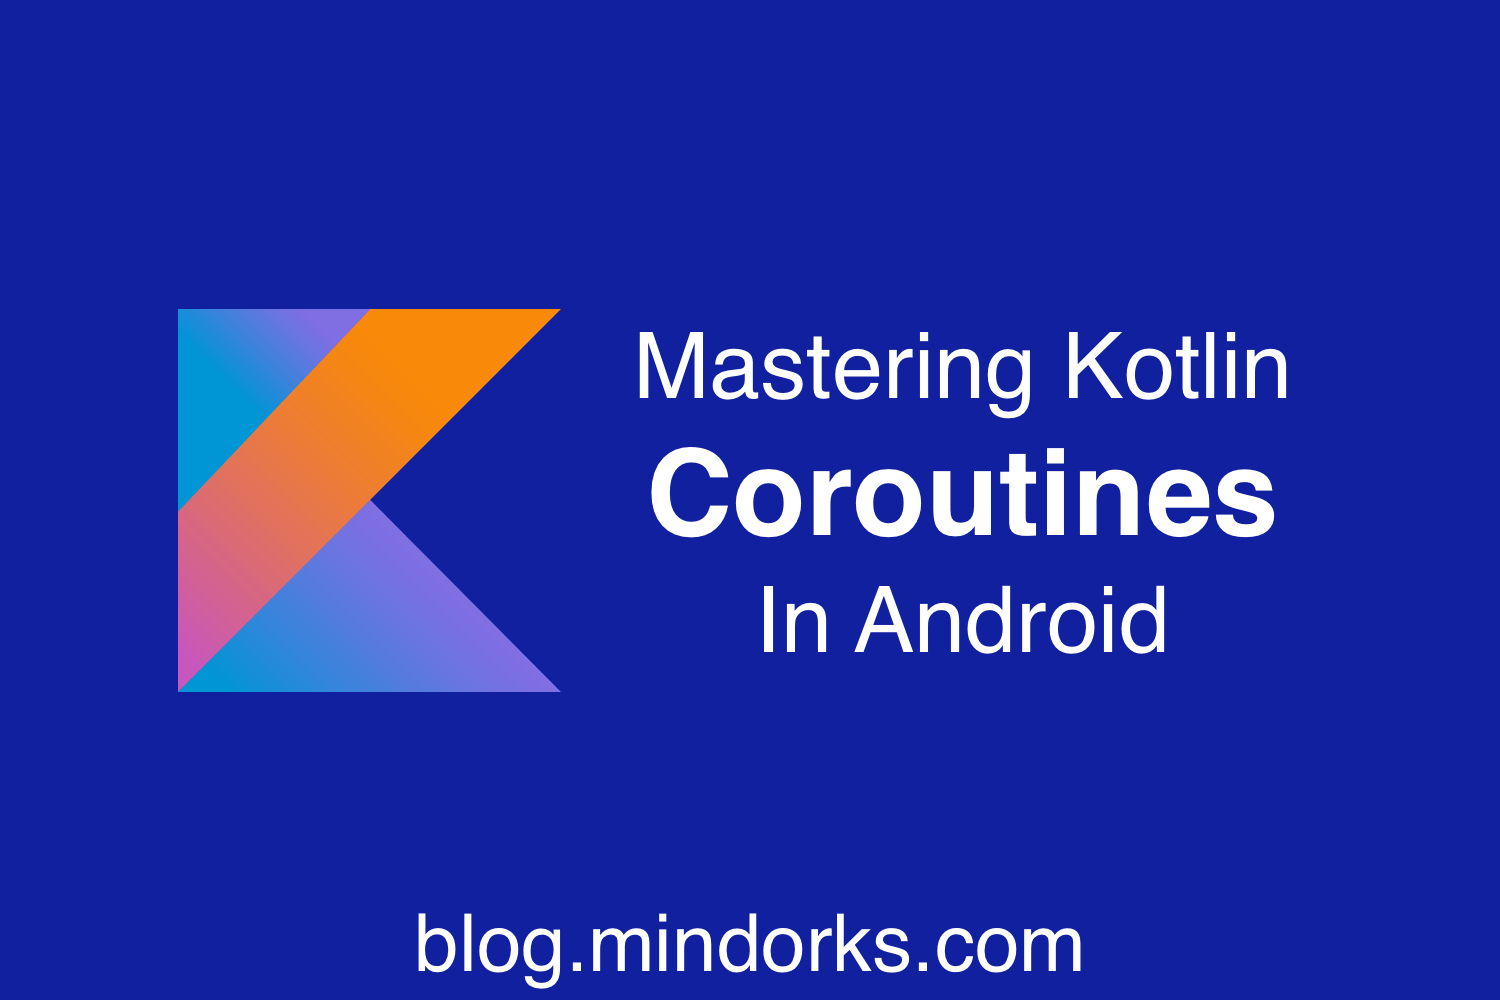 Mastering Kotlin Coroutines In Android - Step By Step Guide